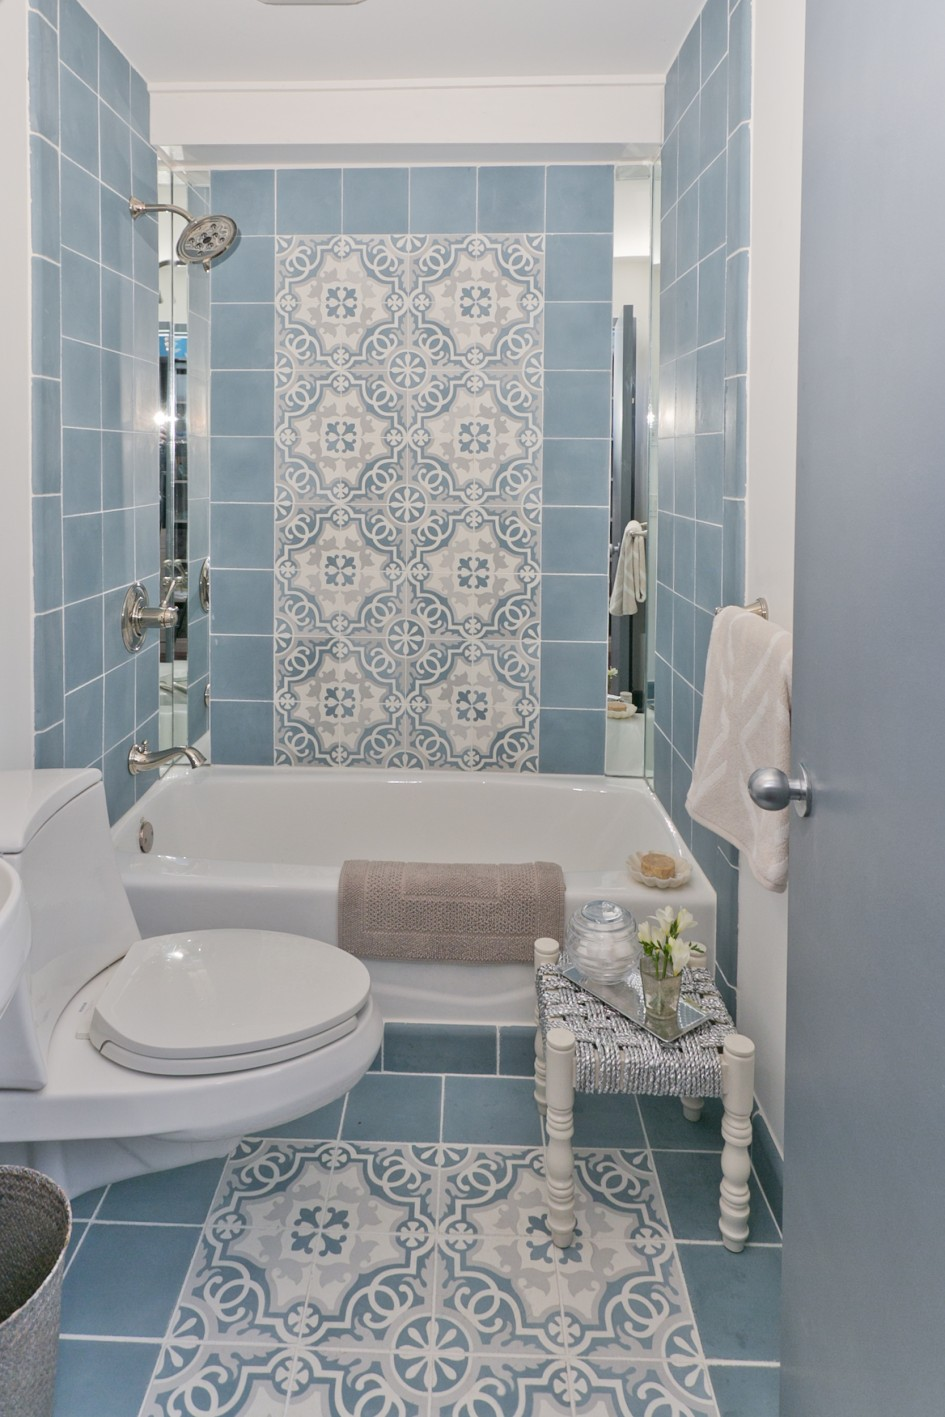 40 vintage blue bathroom tiles ideas and pictures. Black Bedroom Furniture Sets. Home Design Ideas